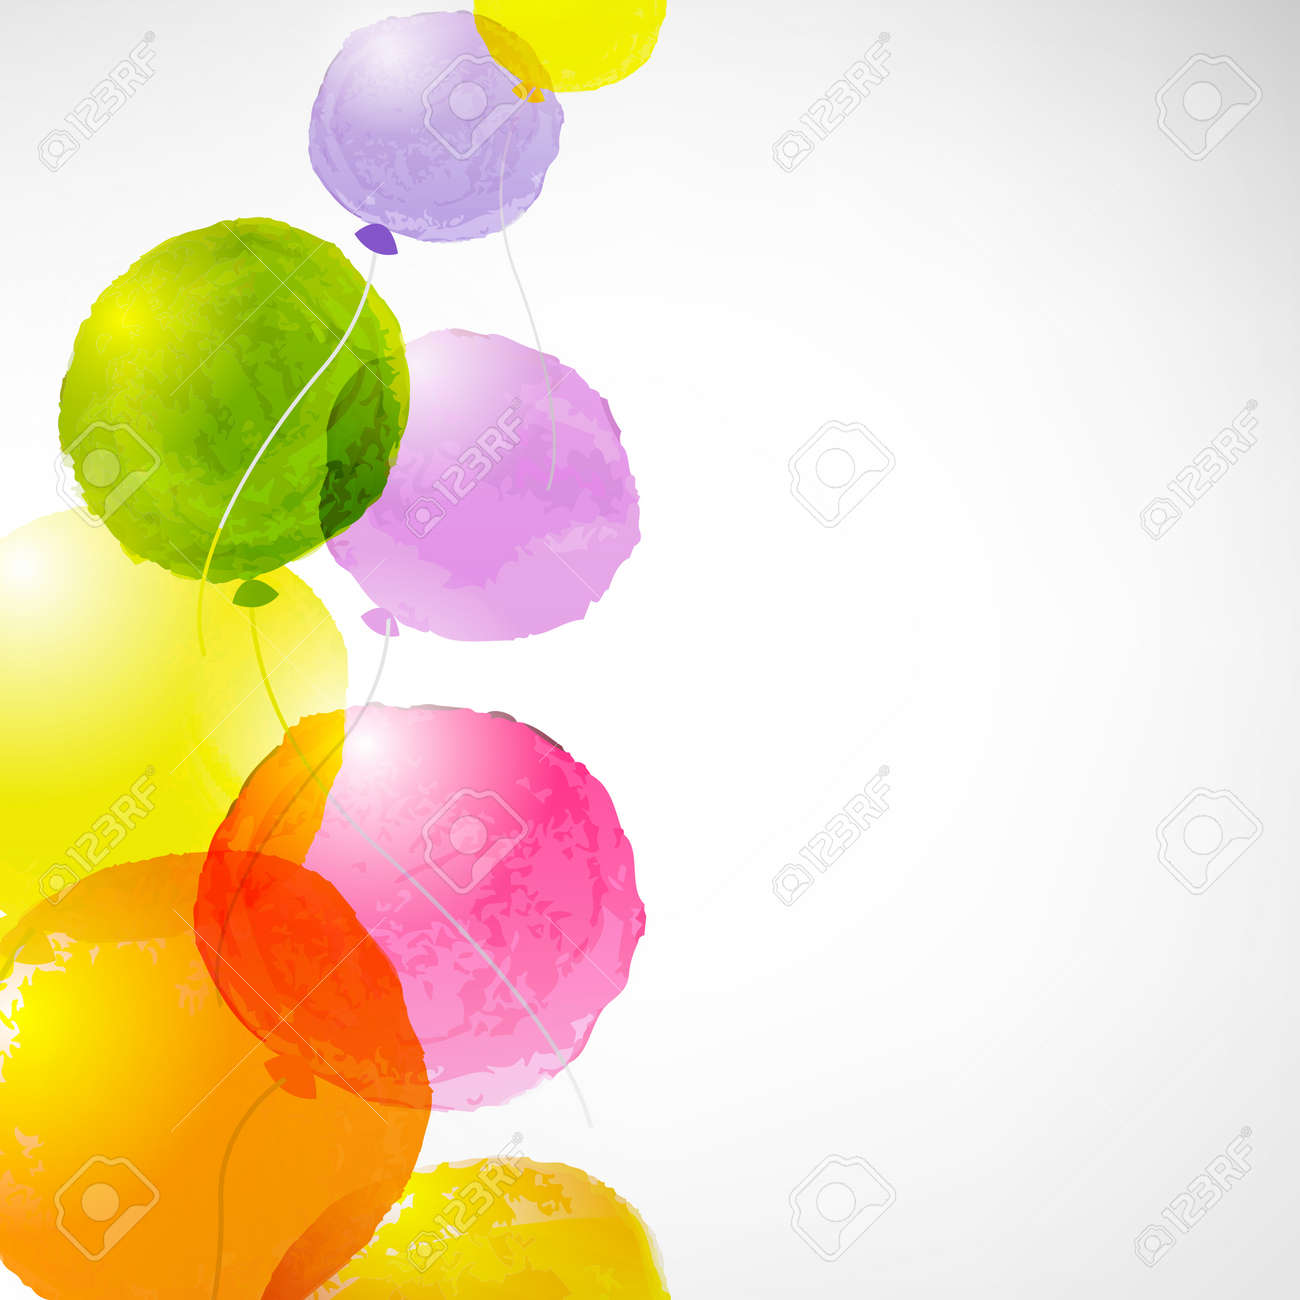 Watercolor Balloons, With Gradient Mesh, Vector Illustration - 29835881